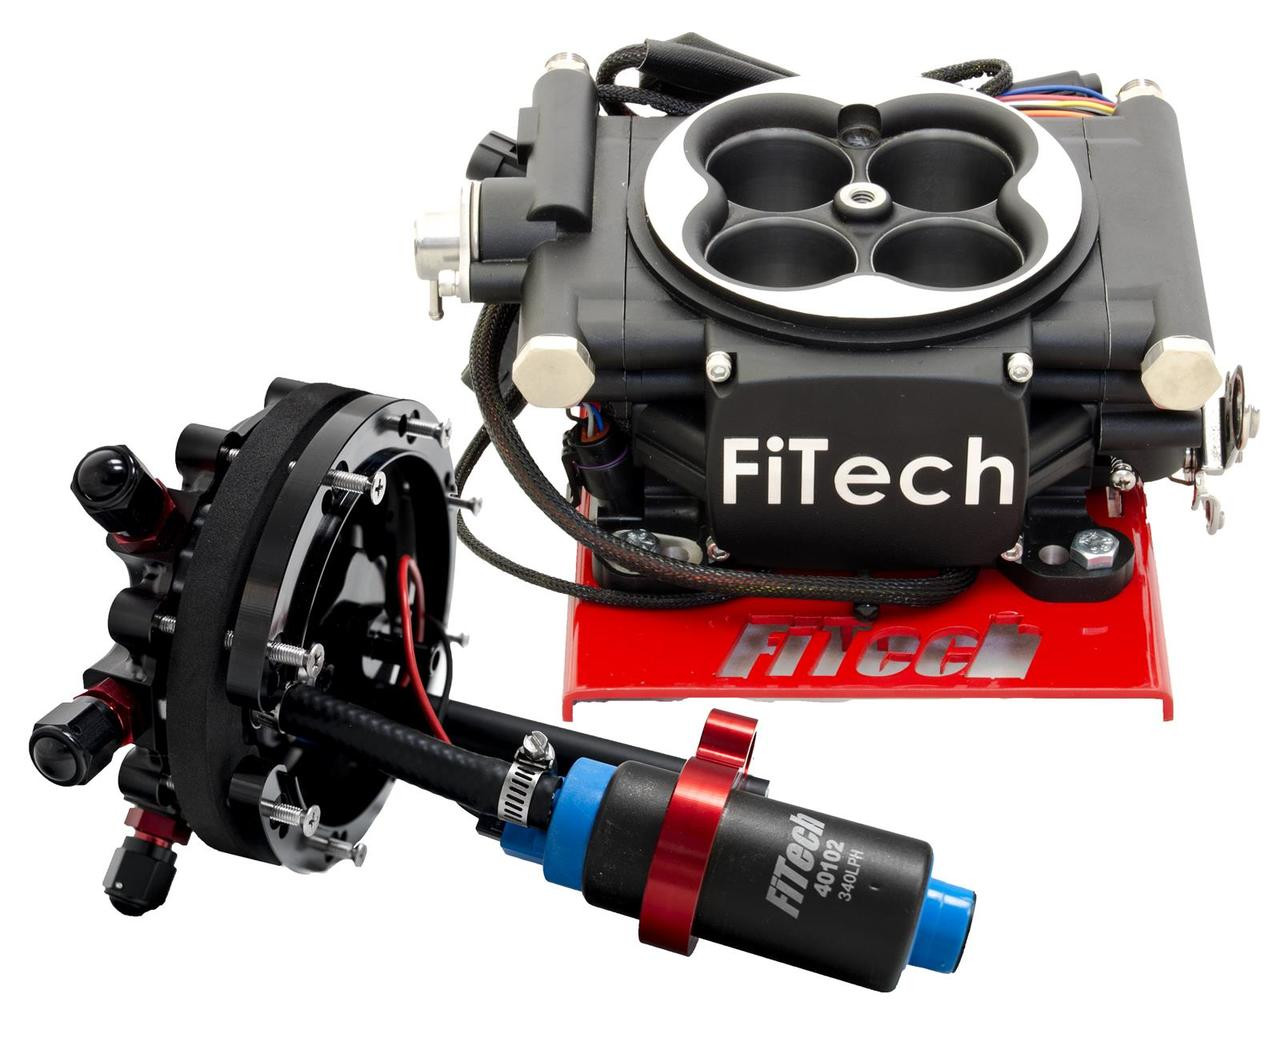 FiTech Fuel Injection Go EFI 4 600 HP Self-Tuning Systems with Hyperfuel  In-Tank Modules 34002 FREE SHIPPING